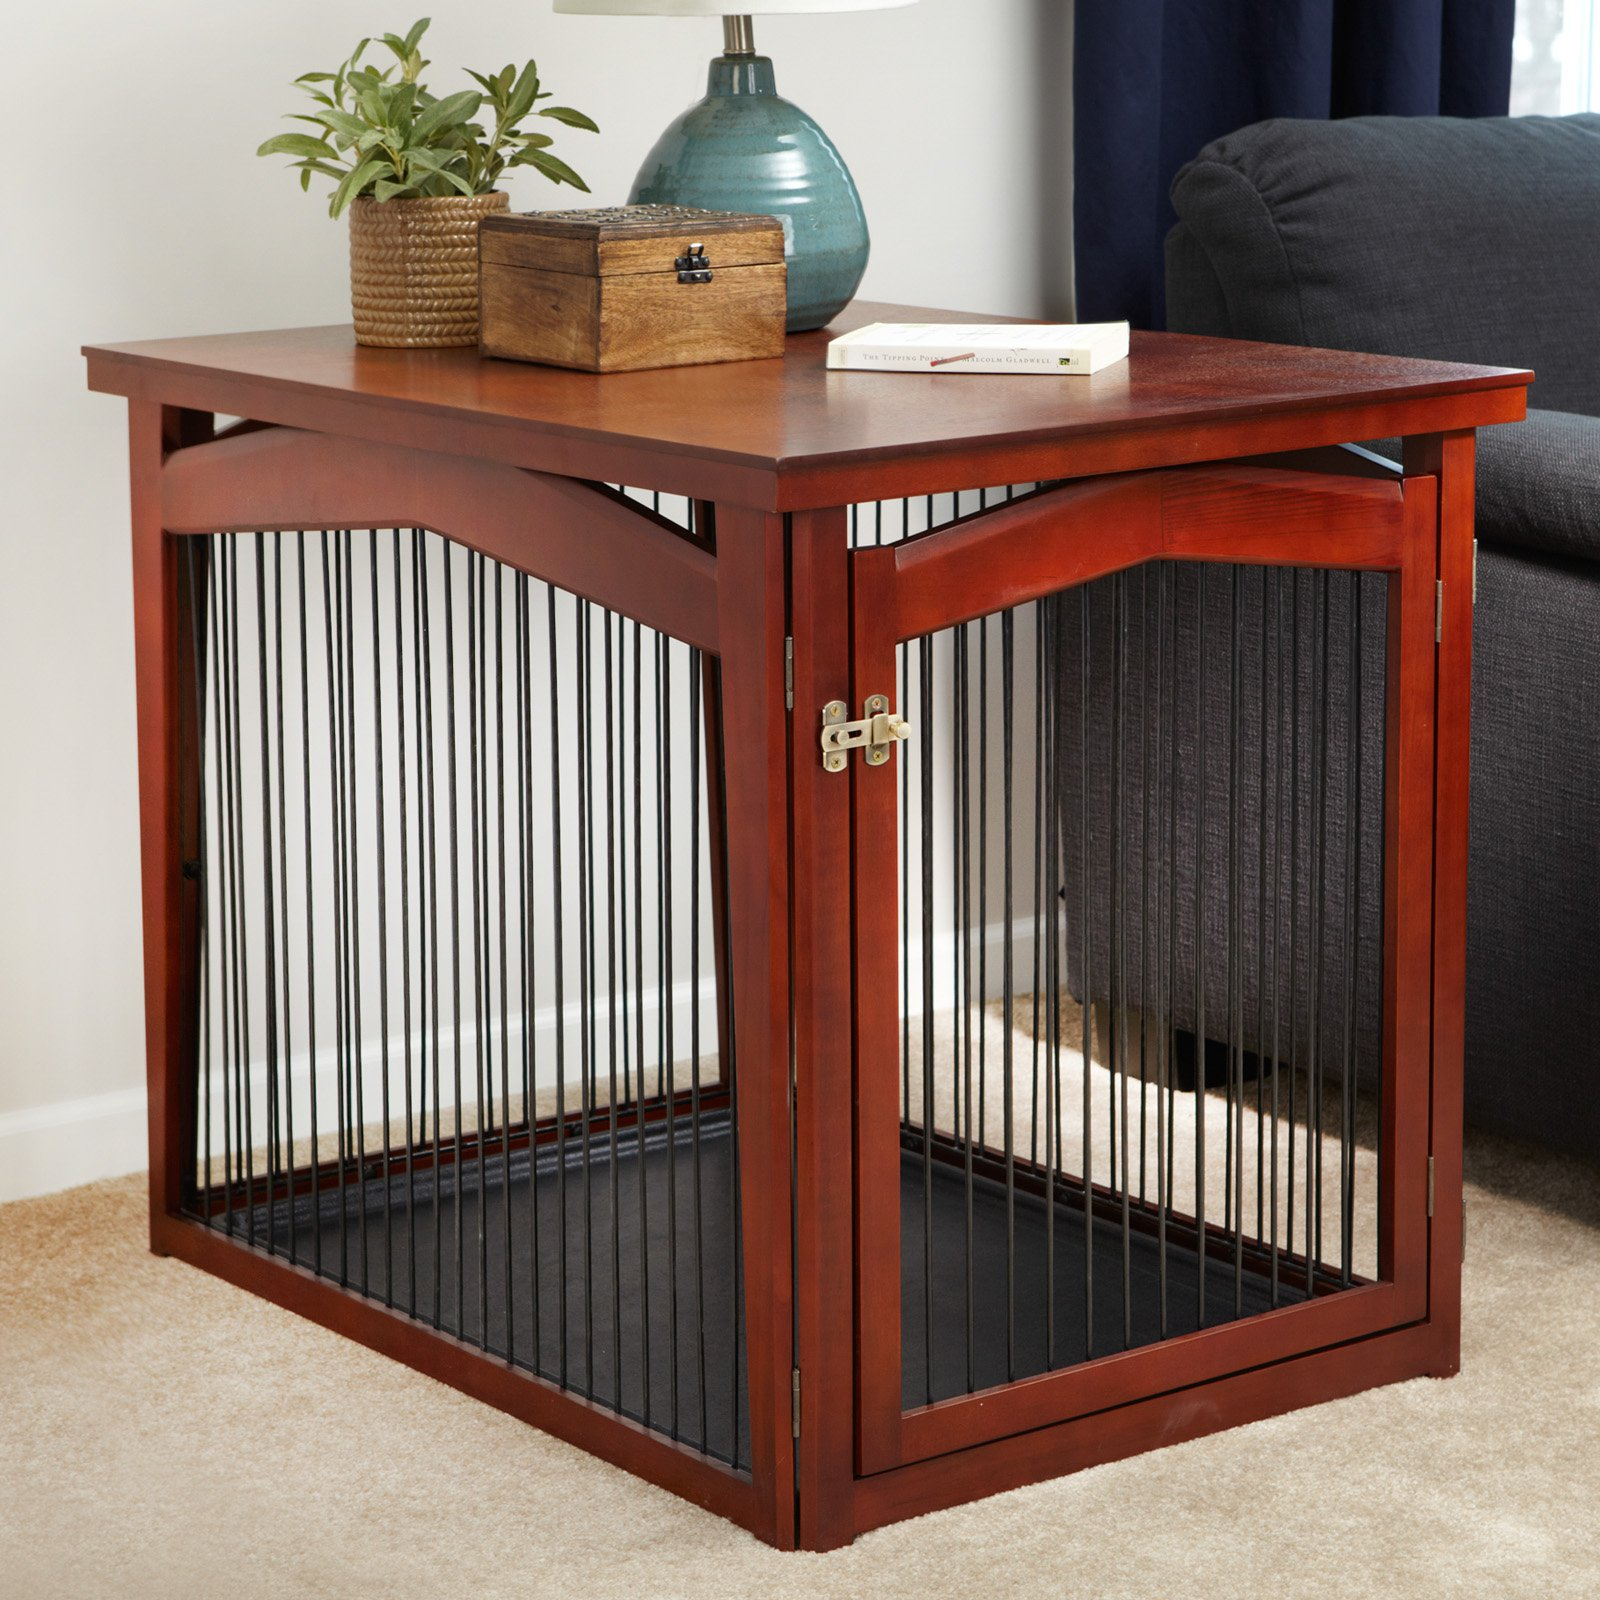 crate and gate large dog end table ethan allen shelf furniture victoria black sofa decorating ideas ashley bar sets tempered glass top server kitchen leons decorative floor lamp